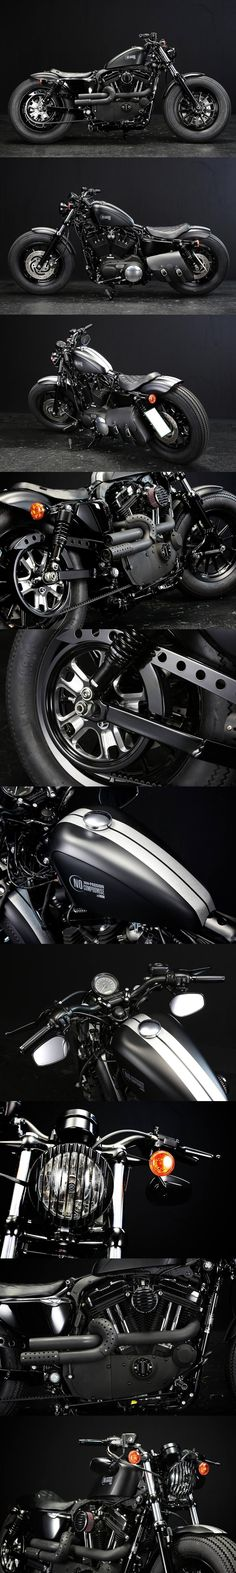 Harley-Davidson Sportster 48 Custom from Rough Crafts Call S .- Harley-Davidson Sportster 48 Custom von Rough Crafts Rufen Sie heute an oder sch… Harley-Davidson Sportster 48 Custom from Rough Crafts Call Today or Watch … – Motorcycles – - Harley Davidson Sportster, Sportster 48, Harley Davidson Chopper, Harley Dyna, Chopper Motorcycle, Motorcycle Style, Motorcycle Helmets, Motorcycle Fashion, Women Motorcycle